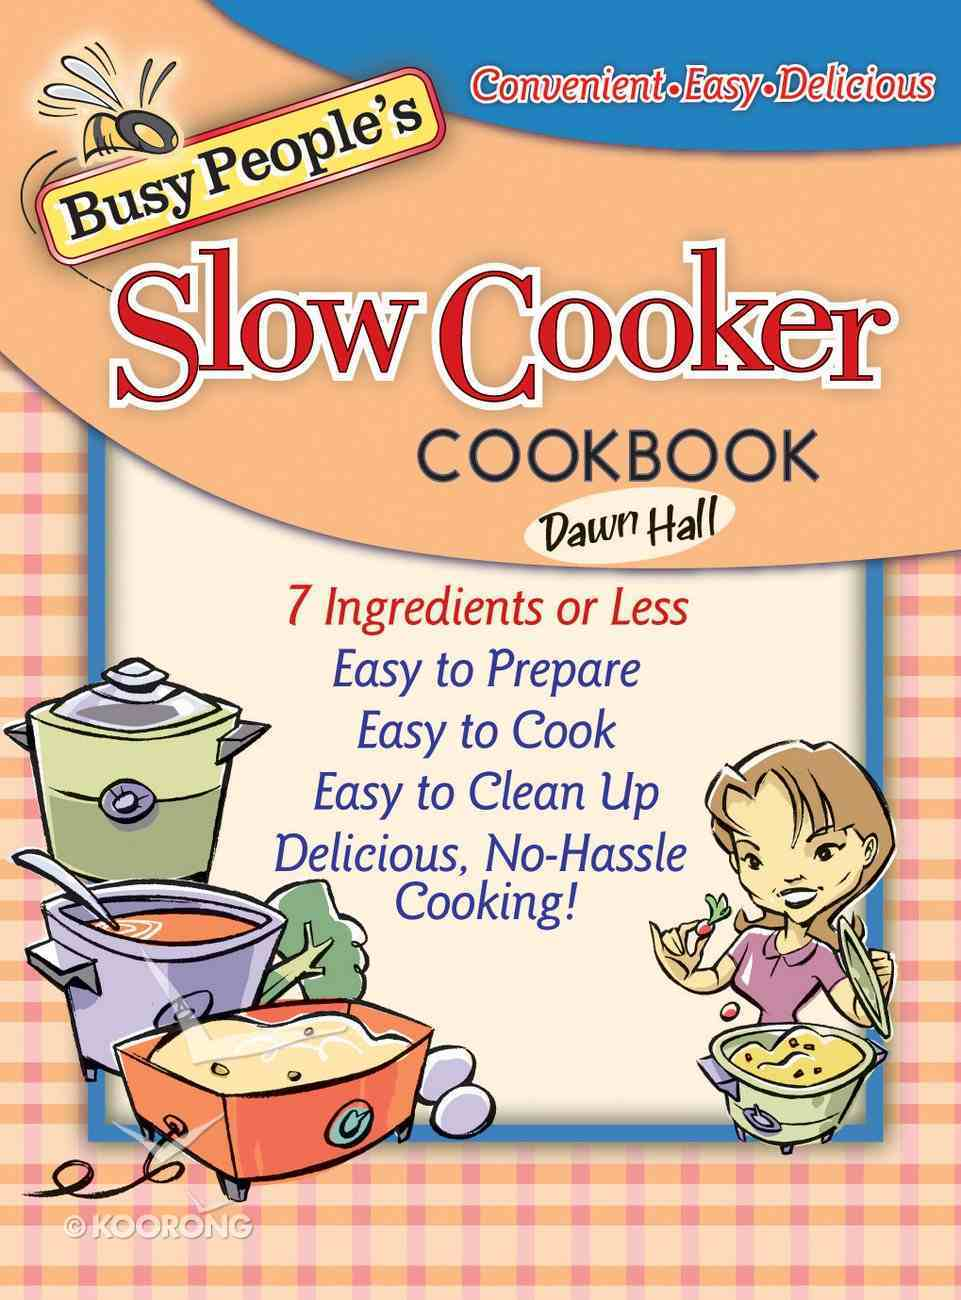 Busy People's Slow Cooker Cookbook eBook